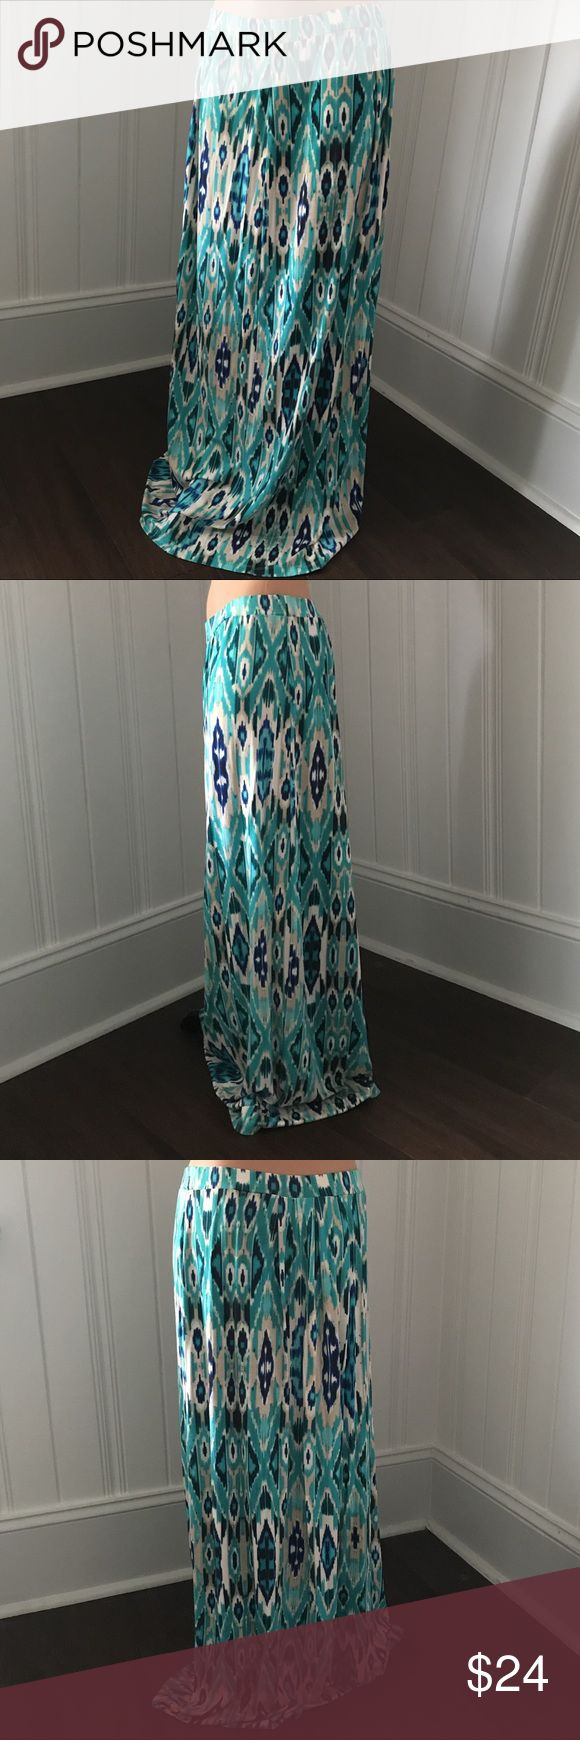 Cynthia Rowley Ikat Blue Teal Maxi Skirt M Cynthia Rowley Ikat Blue Teal Maxi Skirt M  Gorgeous jersey feel skirt! Looks great with a basic tee! Casual and comfy! Great Condition!!  Size - Medium  Approx Measurements: Waist - 29in 39.5in Cynthia Rowley Skirts Maxi